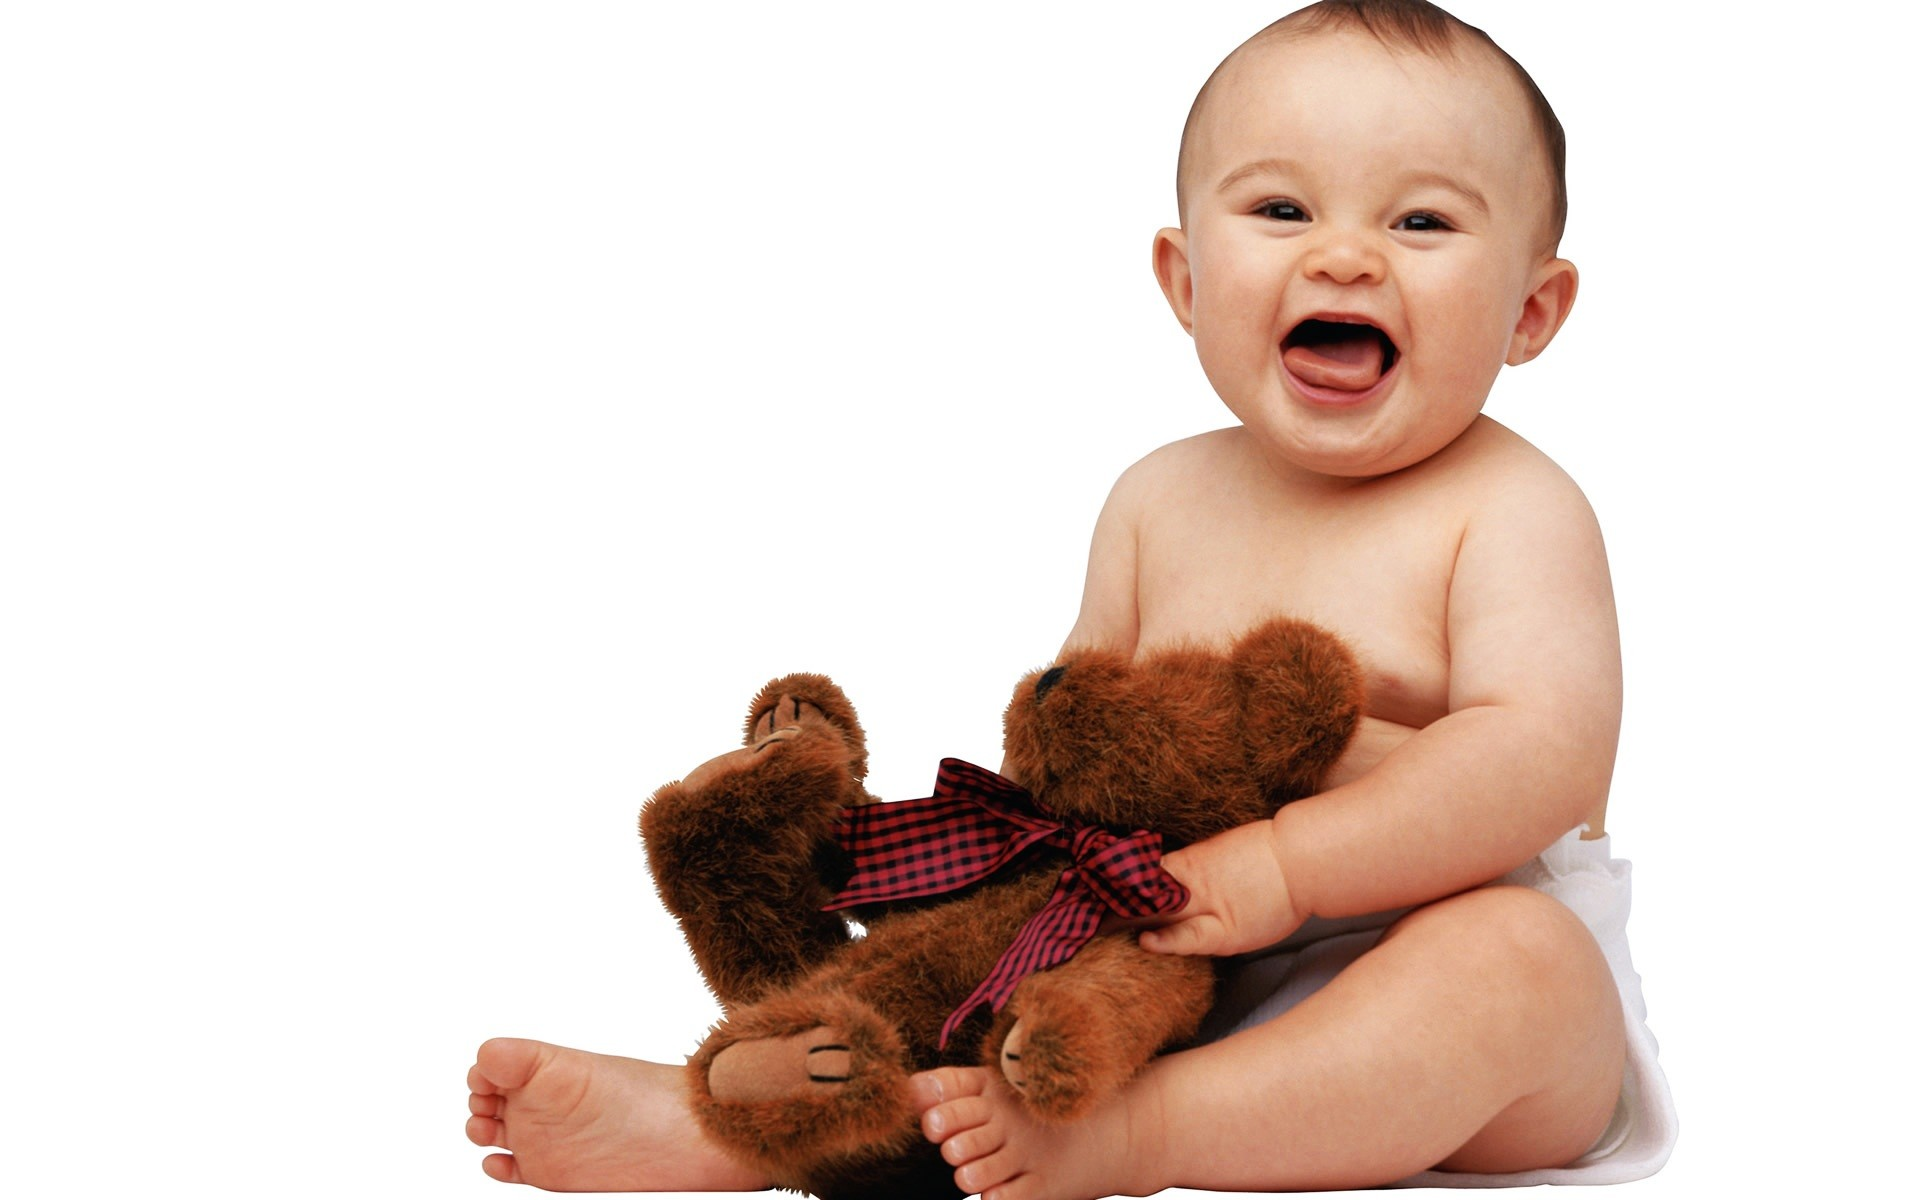 Smiling Cute Babies Wallpaper 62 Images